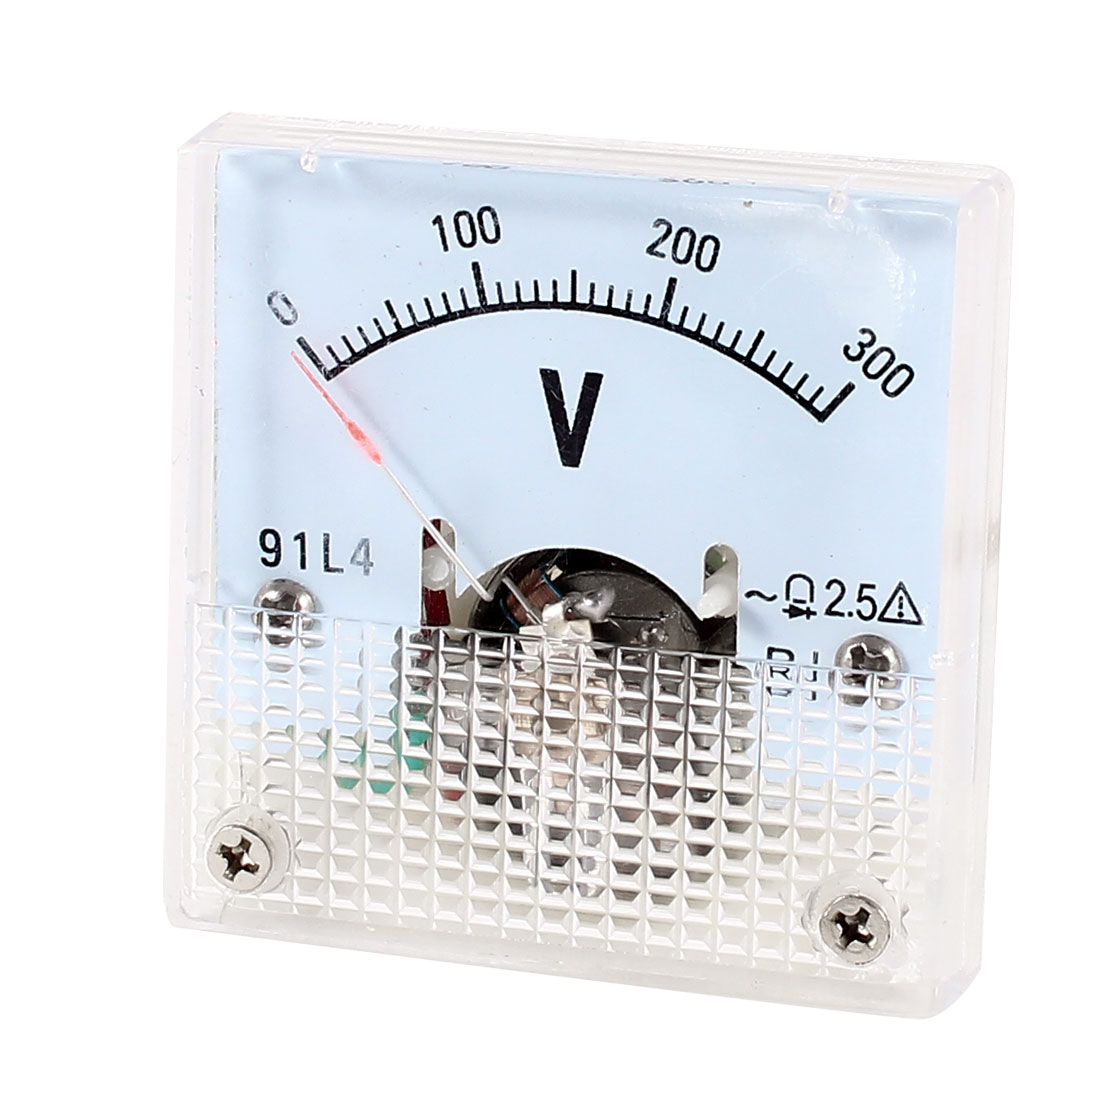 Square Measurement Tool Analog Panel Voltmeter AC 0-300V Measuring Range